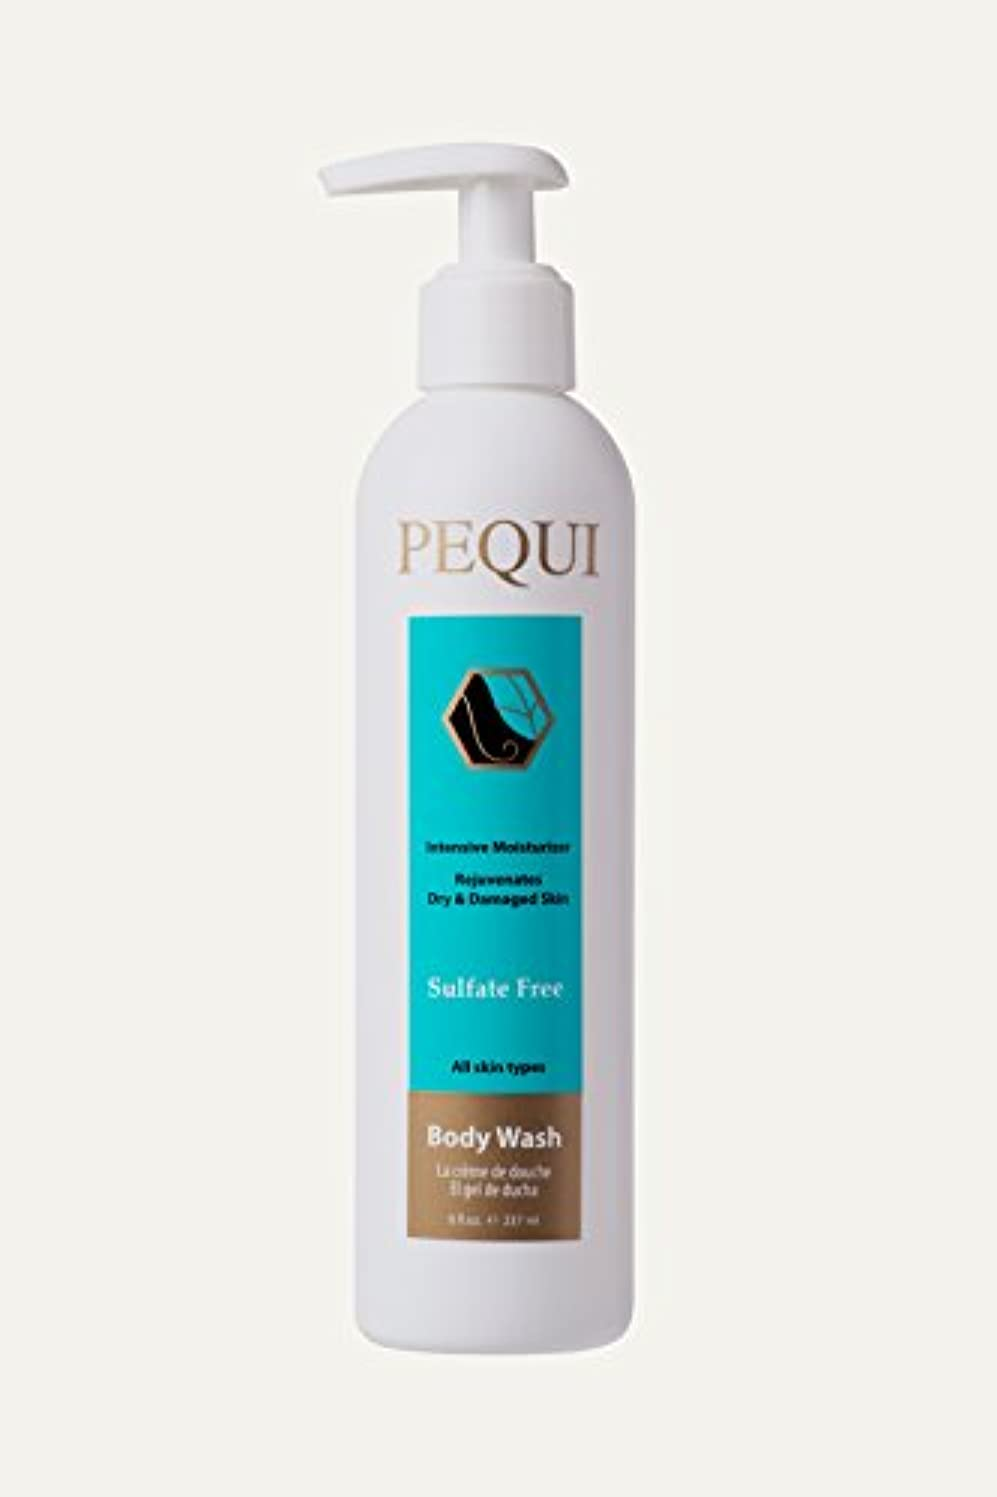 段落状況統計的Bioken Pequi Body Wash 8.0 oz by Bioken